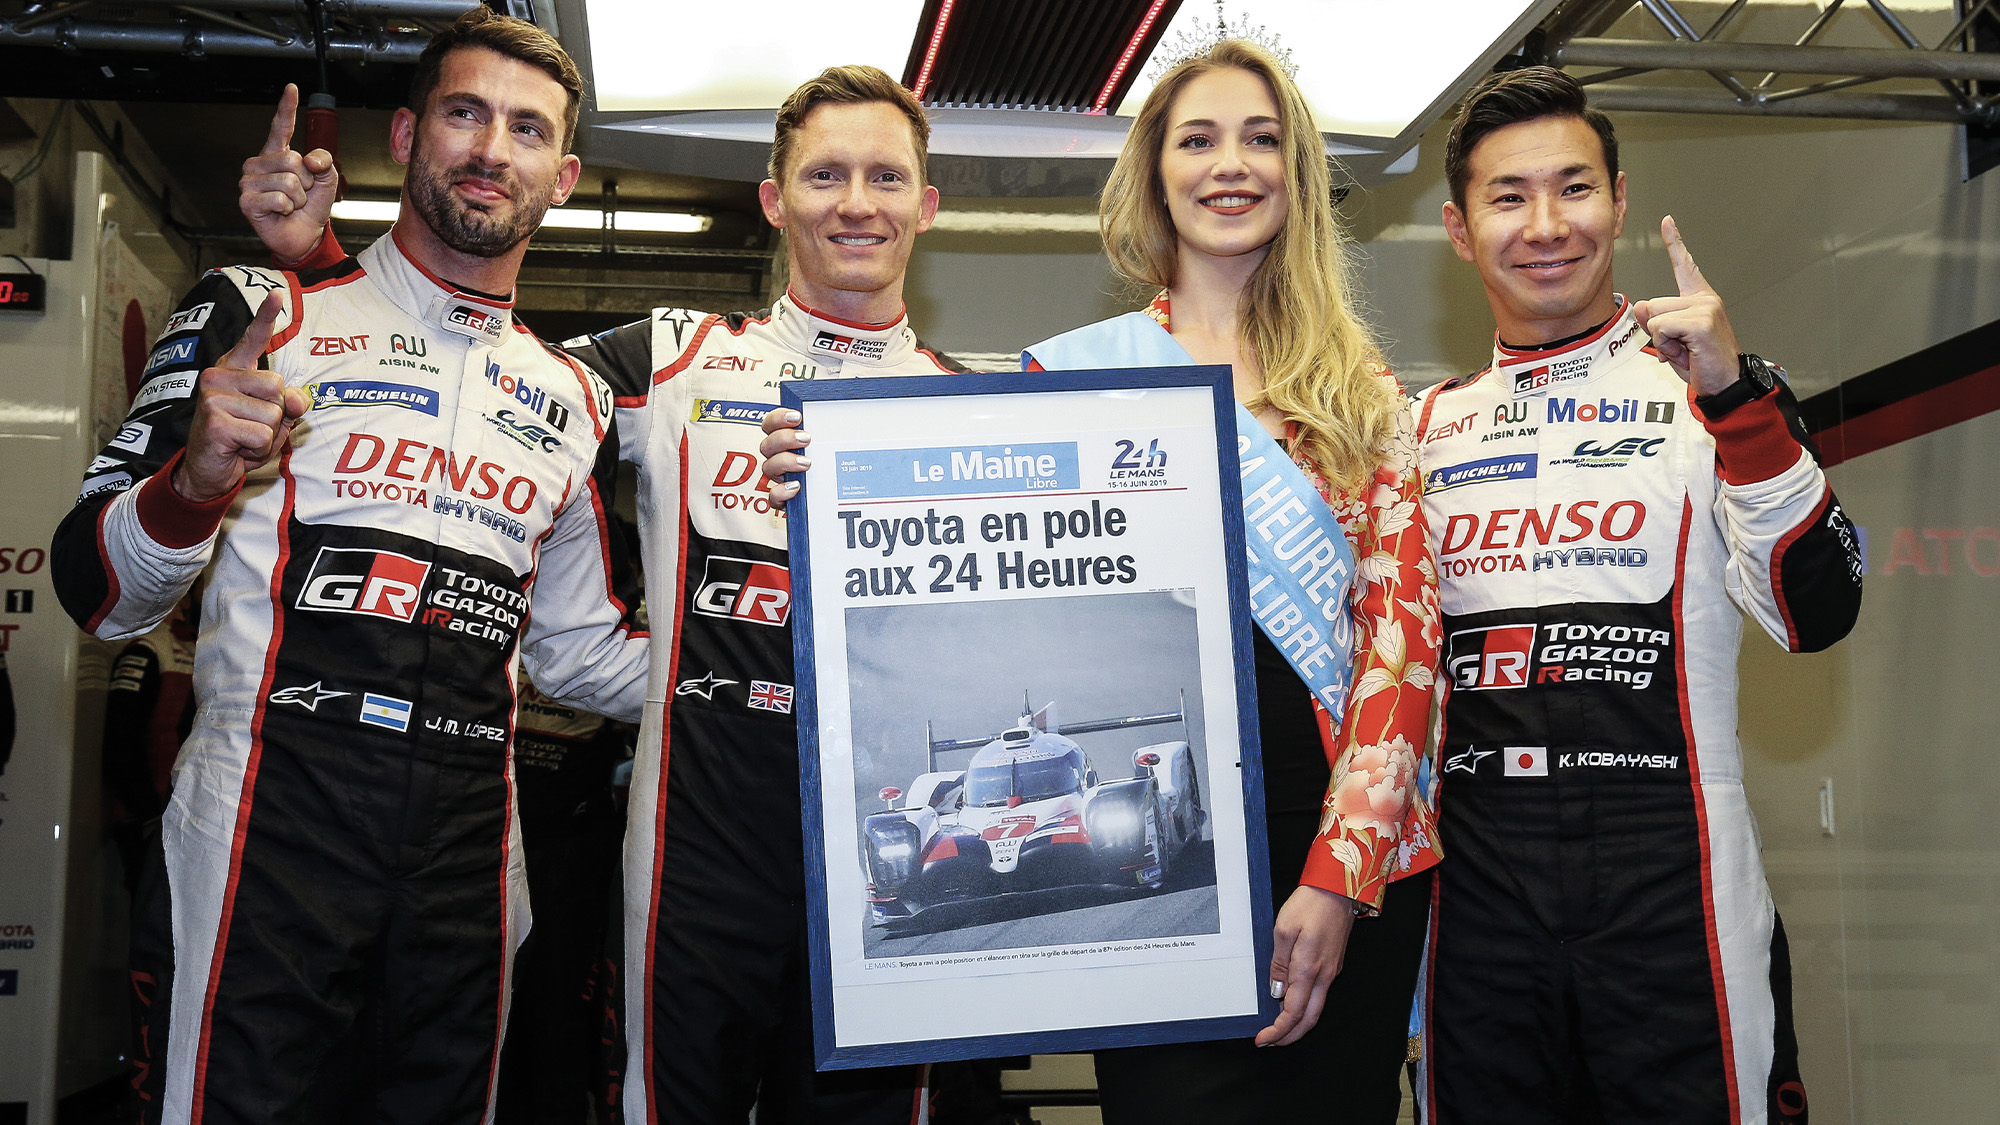 Toyota car 7 drivers celebrate clinching pole position for the 2019 Le Mans 24 Hours